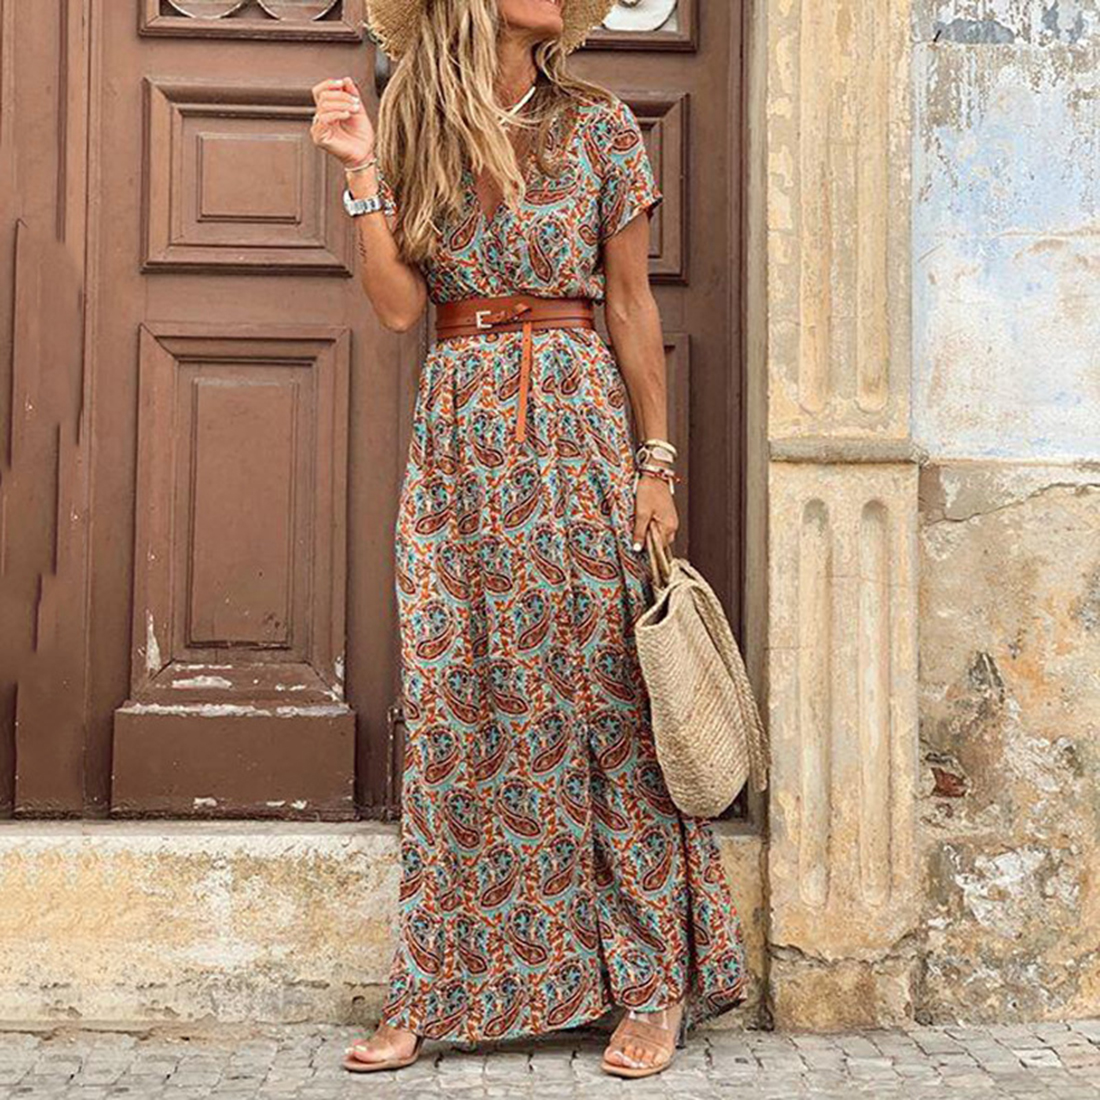 2020 Summer Beach Maxi Dress Women Floral Print Boho Long Dress Casual V-Neck Split Sexy Party Dress Robe Femme